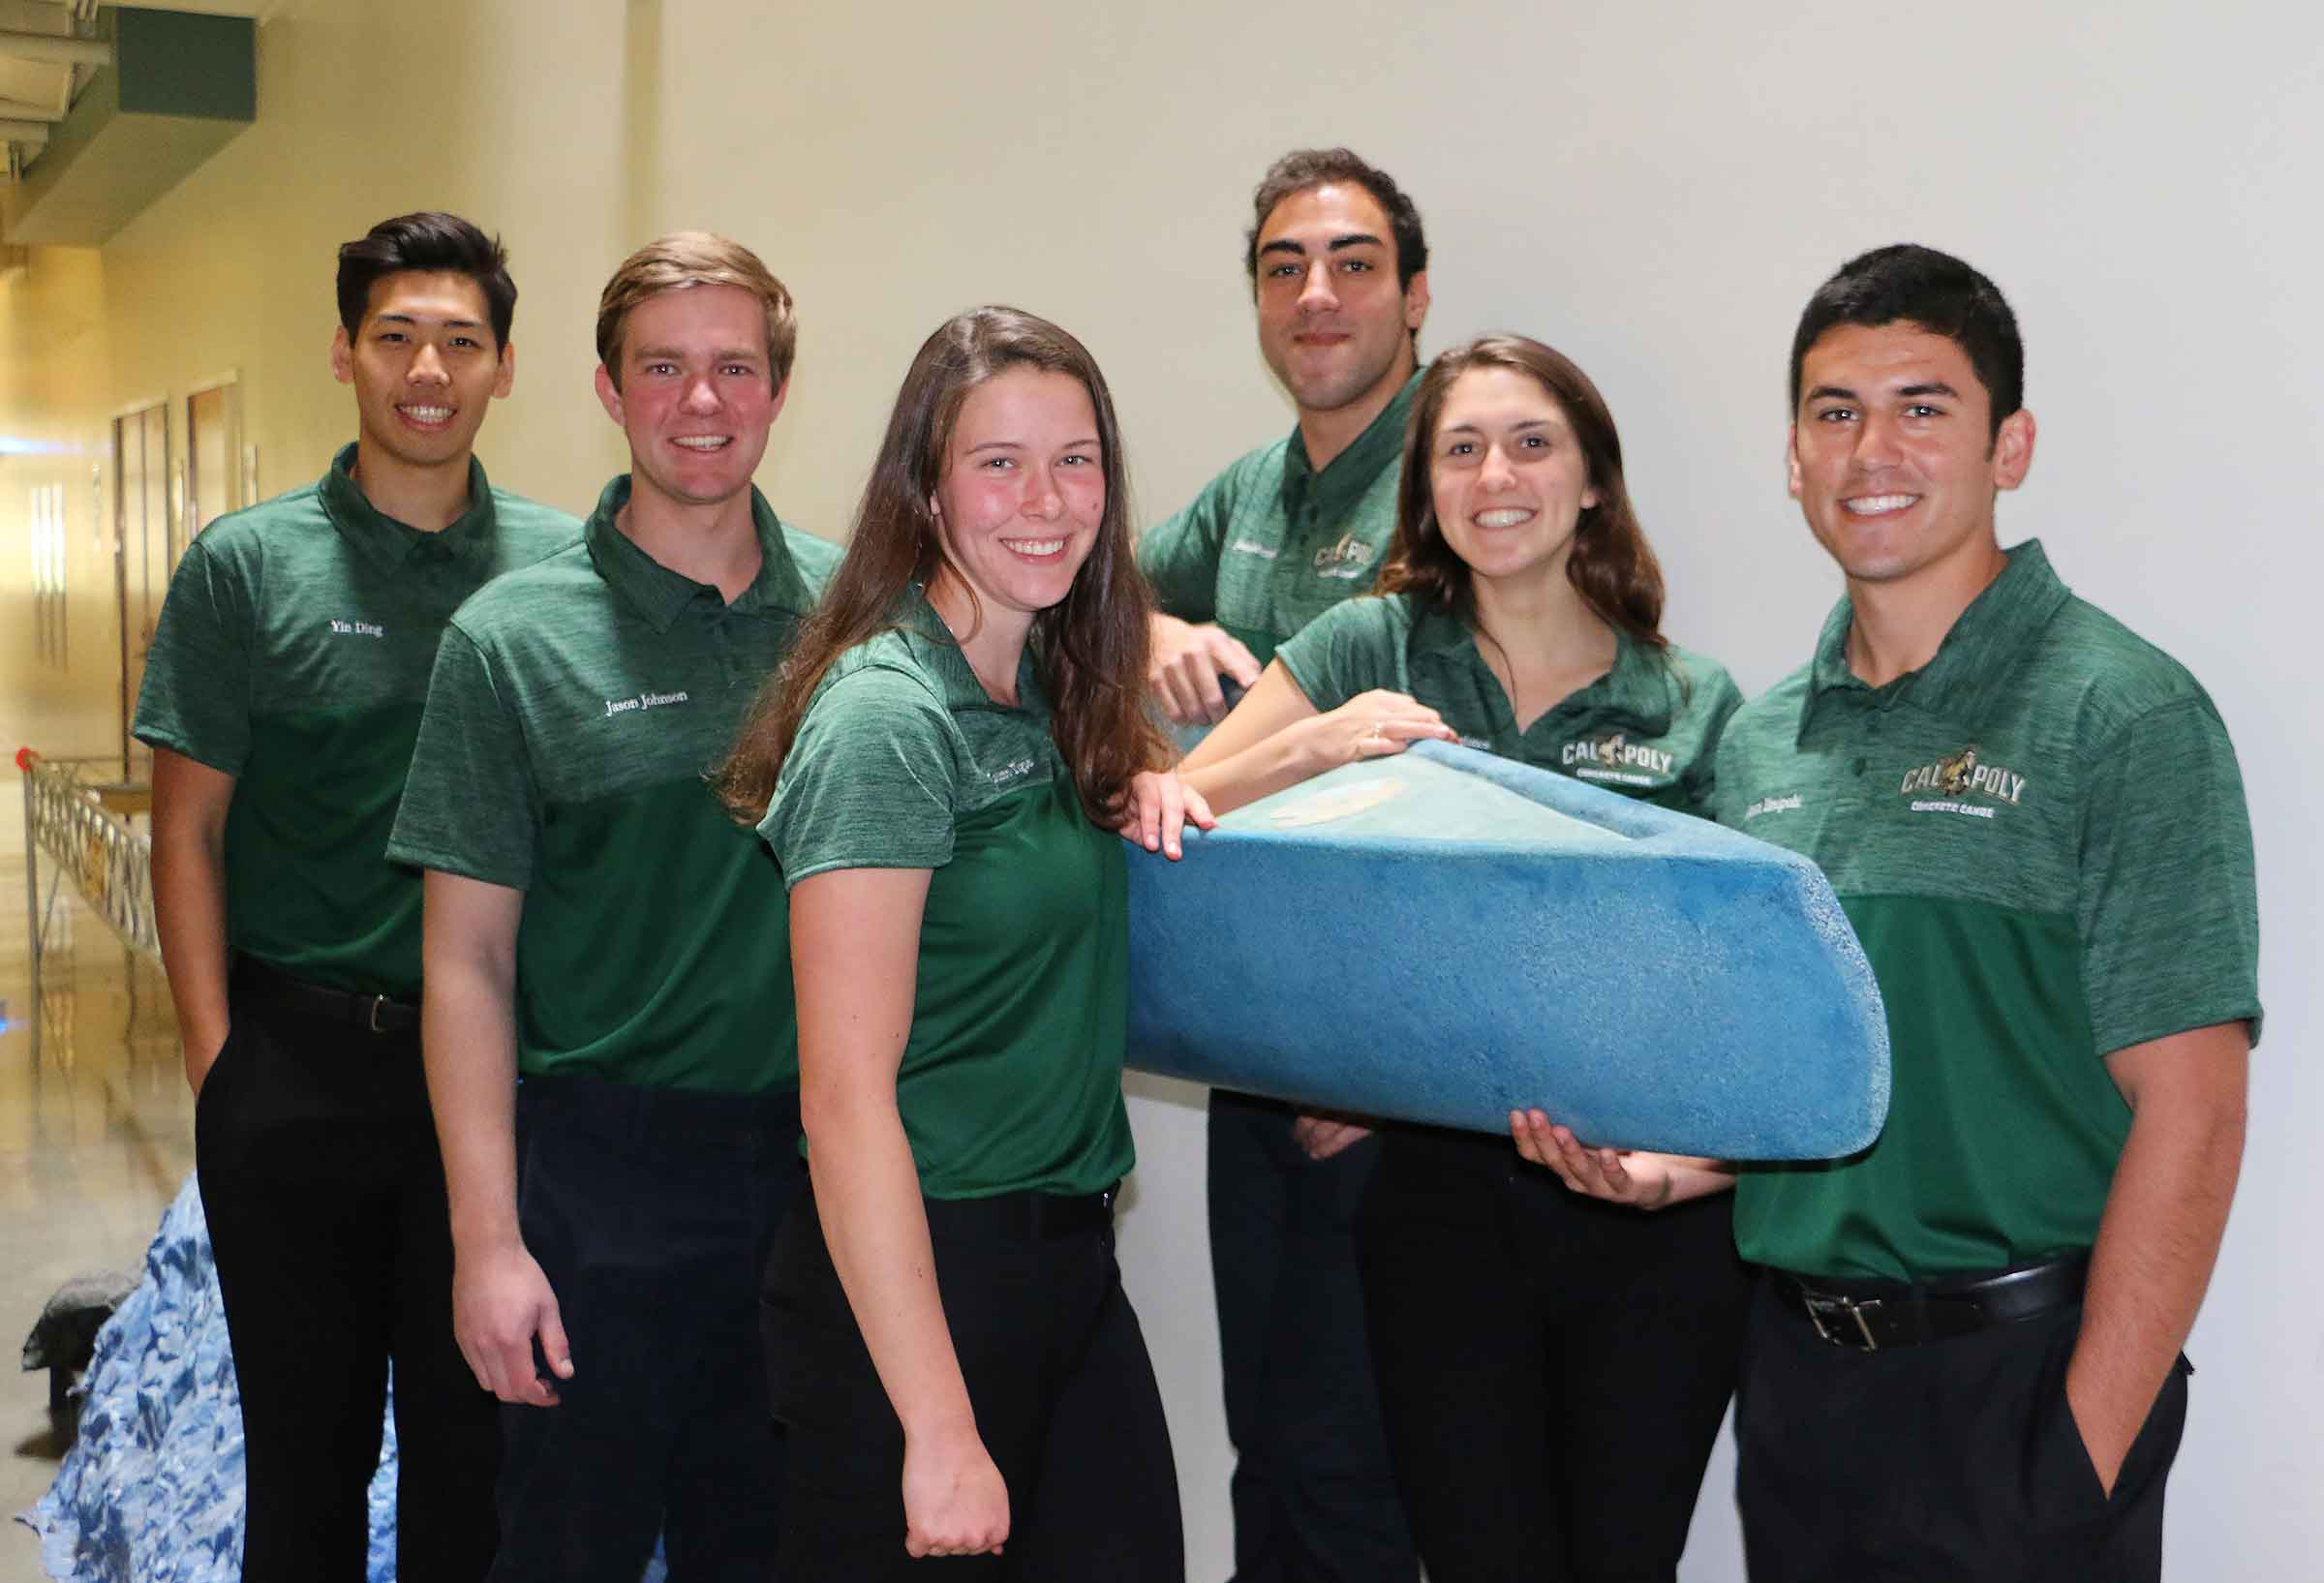 Members of this year's Cal Poly concrete canoe team includes, from left, civil engineering seniors Yin Ding, Jason Johnson, Lauren Tigue, Jonathan Mahmoud, Eleni Korogianos and Mason Breipohl, team project manager.